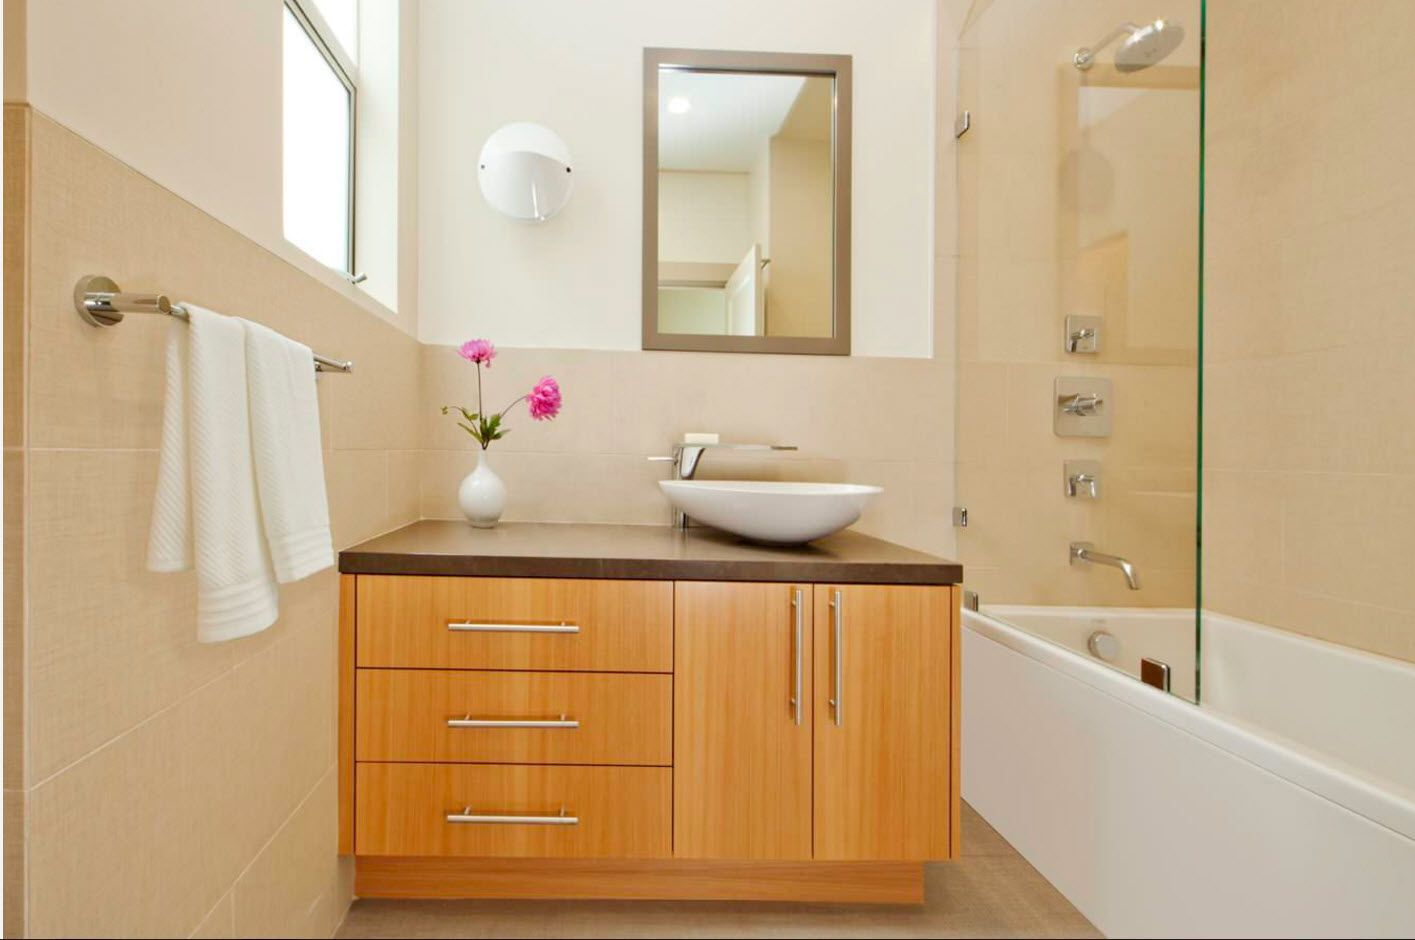 Neat bathroom vanity with light wooden surface